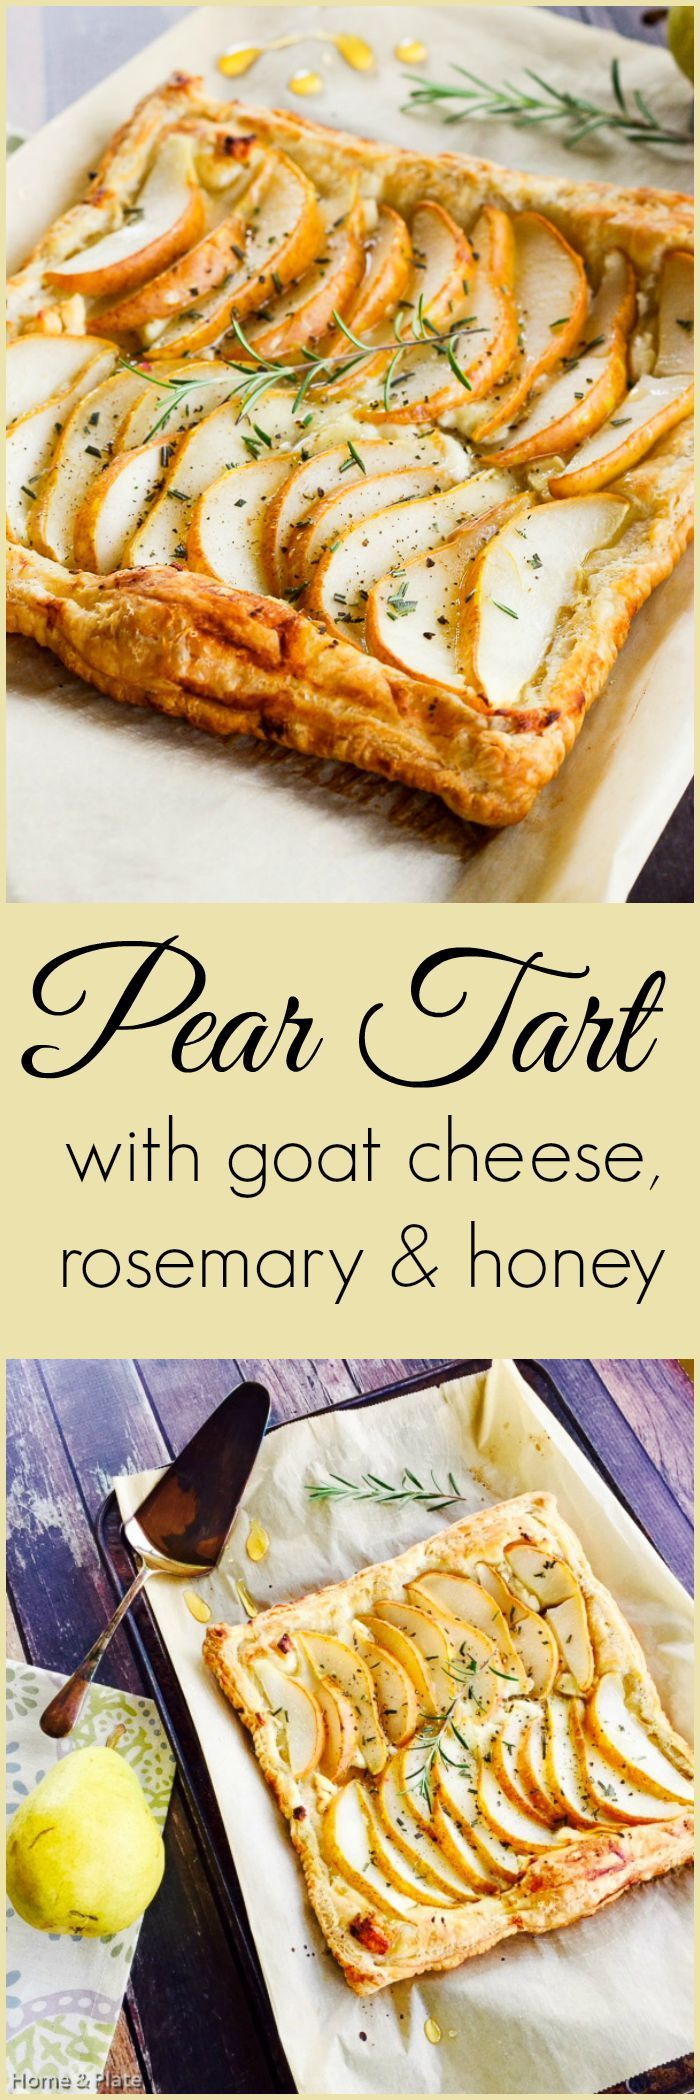 Pear Tart with Goat Cheese, Rosemary & Honey | Home & Plate | http://www.homeandplate.com | Enjoy sweet pears on this puff pastry tart. (scheduled via http://www.tailwindapp.com?utm_source=pinterest&utm_medium=twpin&utm_content=post140691123&utm_campaign=scheduler_attribution)